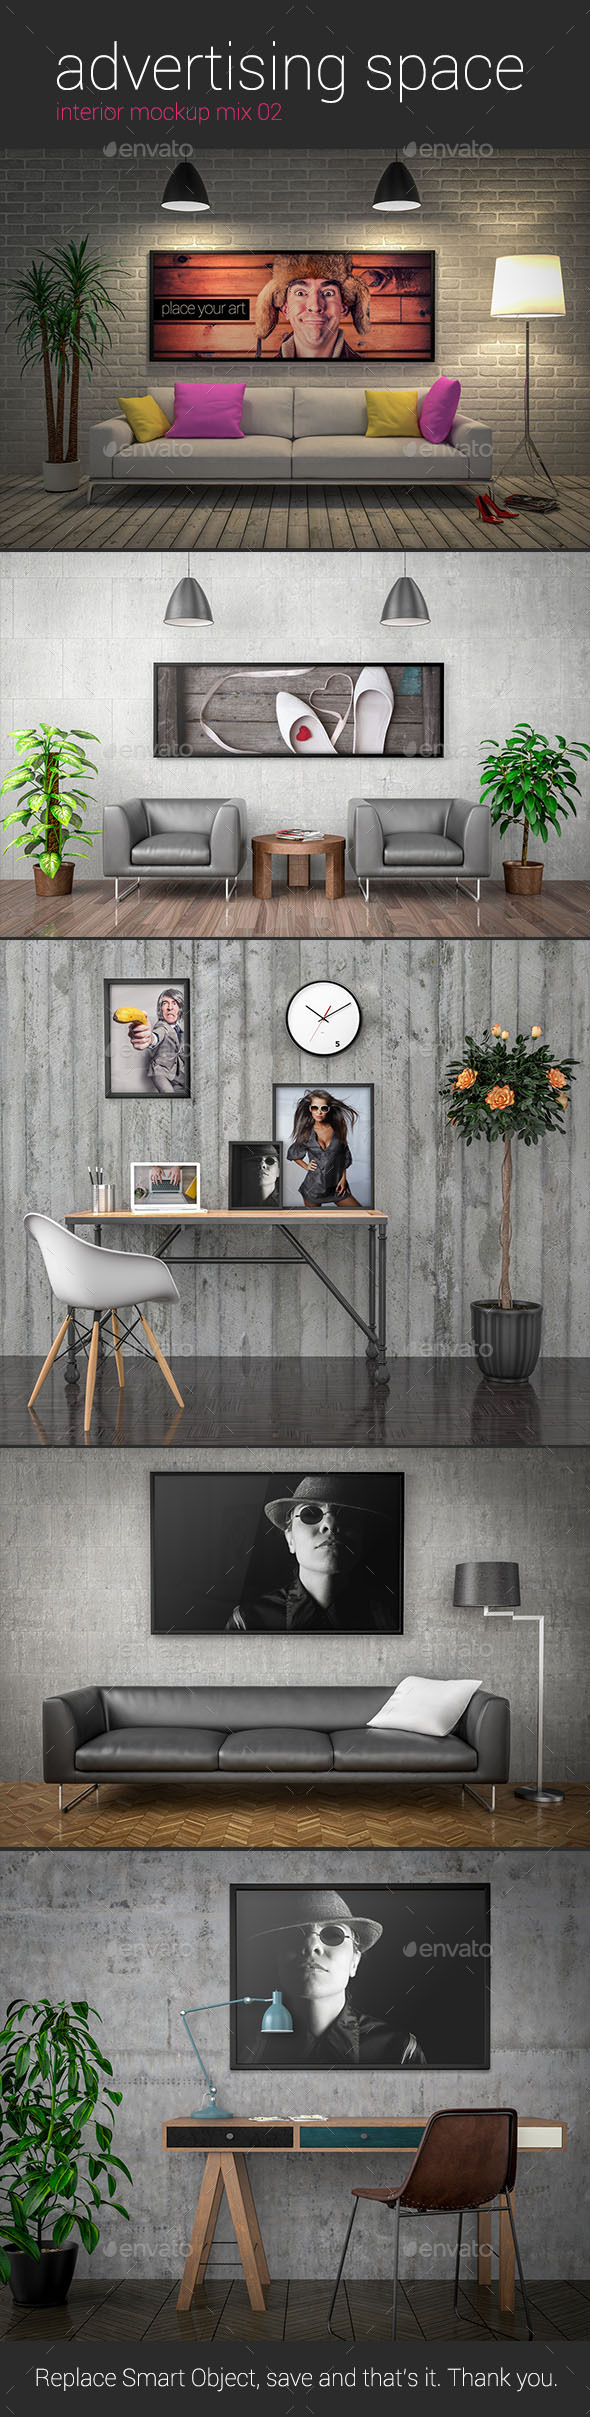 Advertising Space Interior Mockup Mix 02 - Posters Print